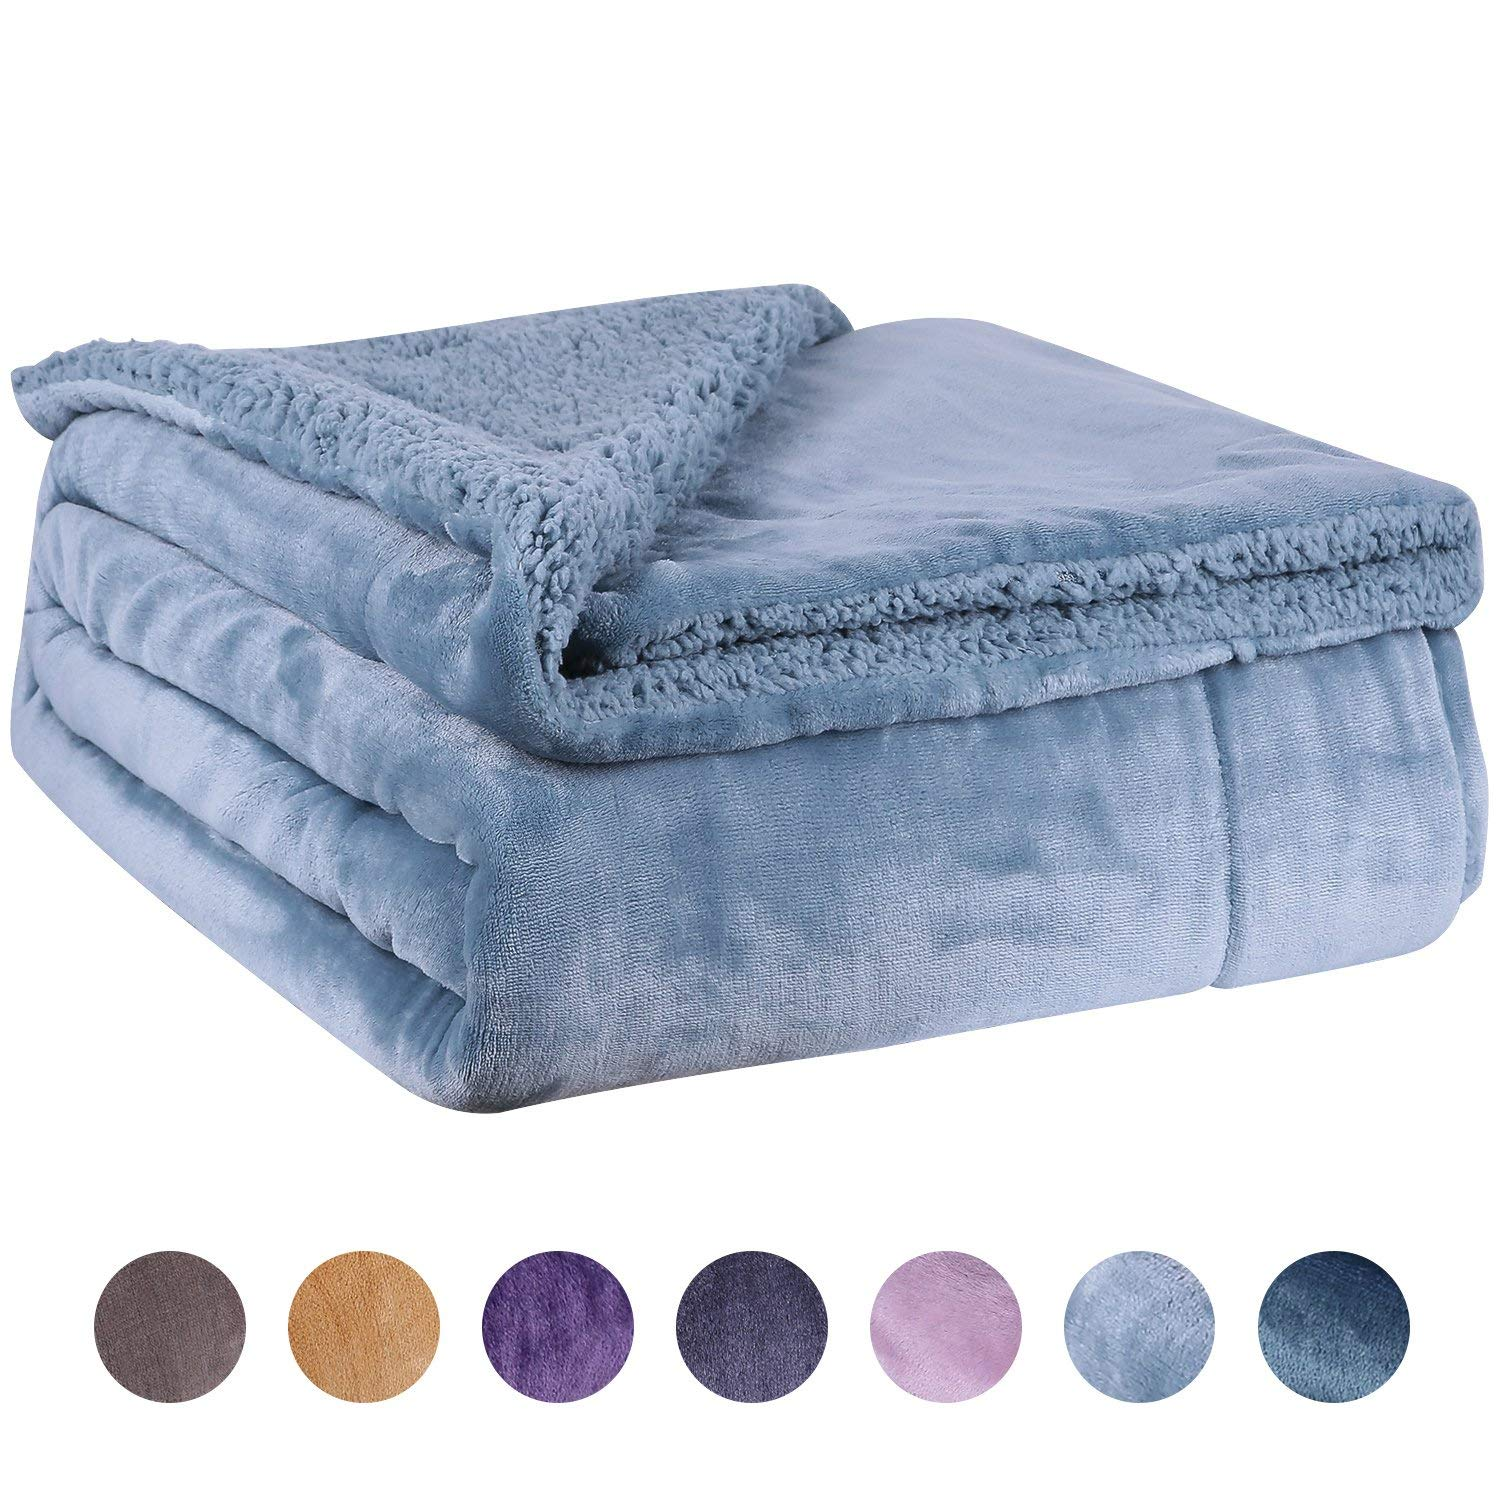 Get Quotations · Fleece Throw Blanket Twin Size - Fuzzy Sherpa Plush Queen  Summer Throw Blanket for Couch Soft 9f95ca549